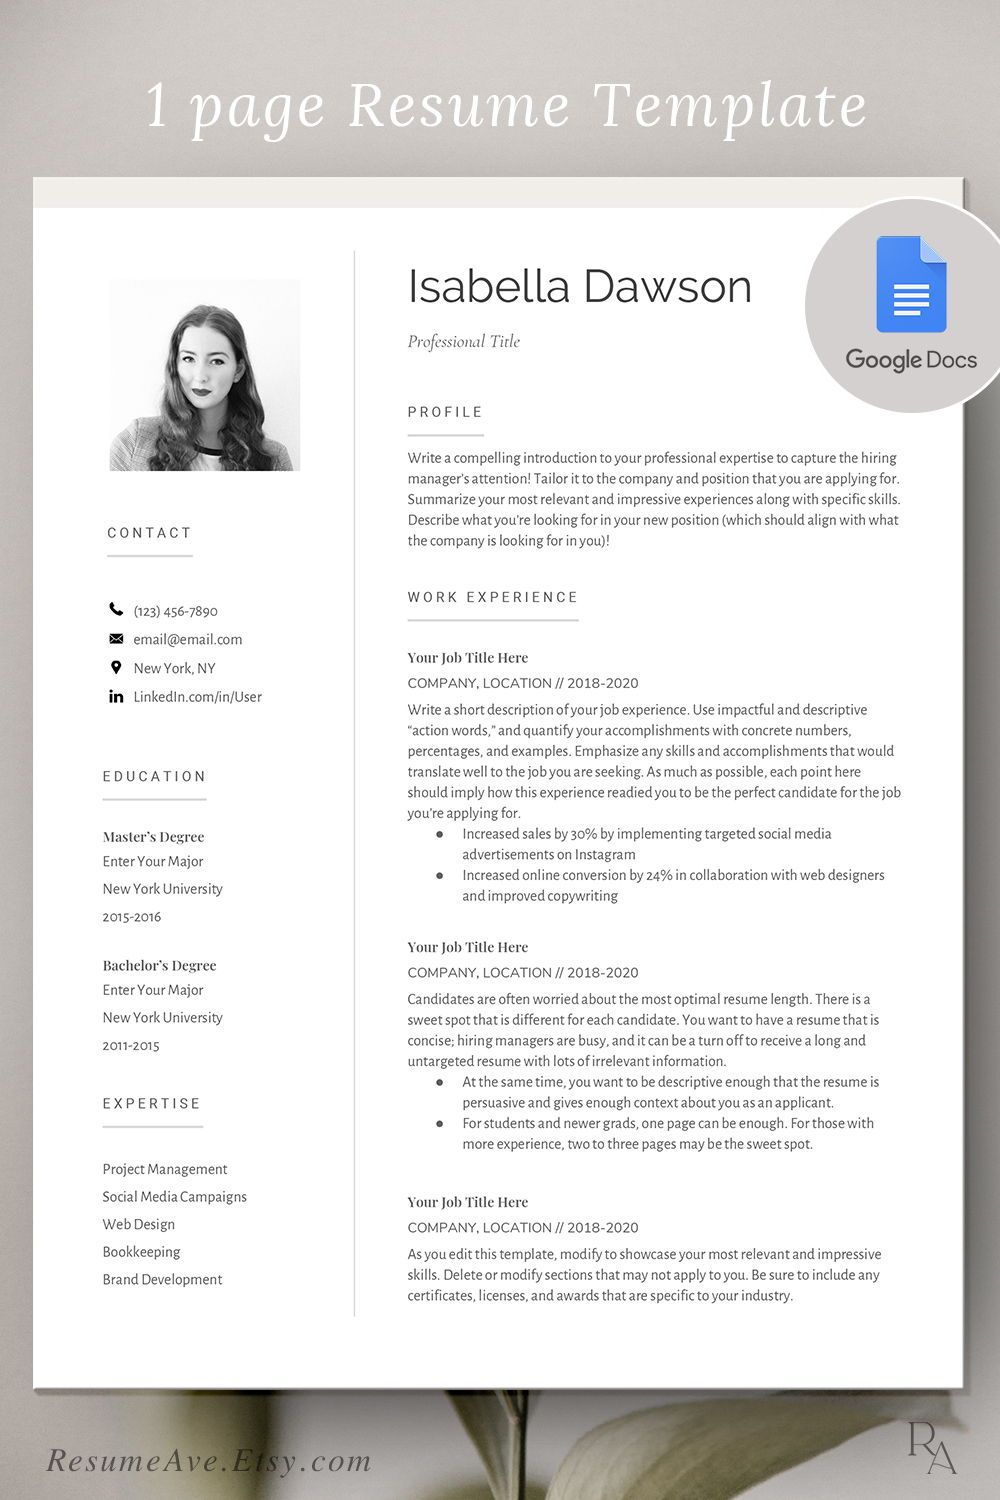 Modern Google docs resume for executives cv template for